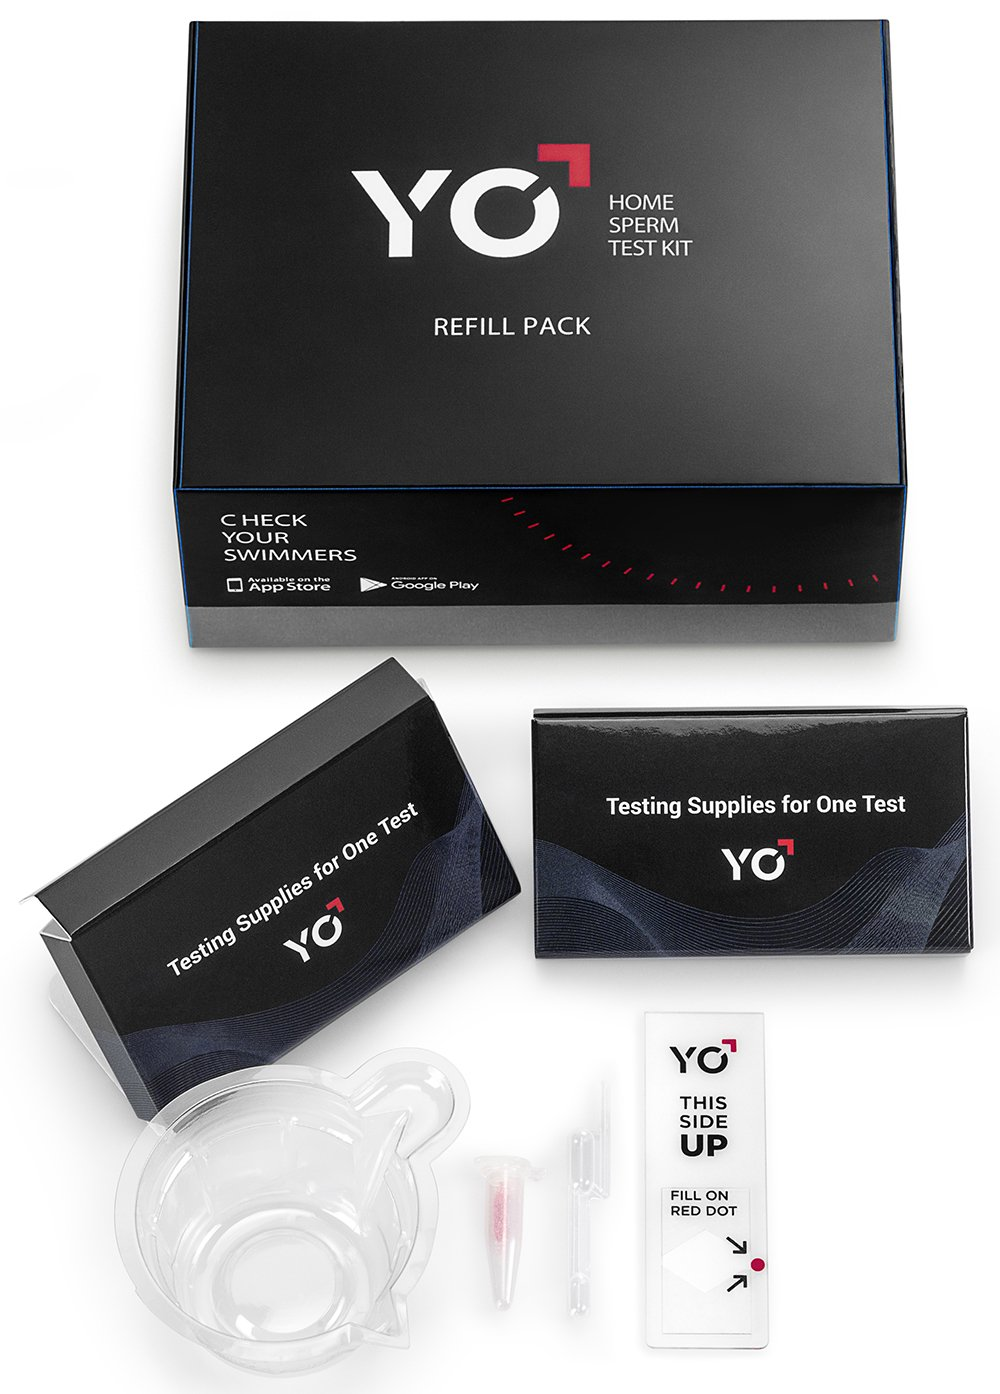 Refill Kit | 2 Additional Tests for YO Home Sperm Test | Motile Semen Analysis | YO Testing Device NOT Included - Refill Pack Only | Choose: 4 Pack, 2 Pack by YO